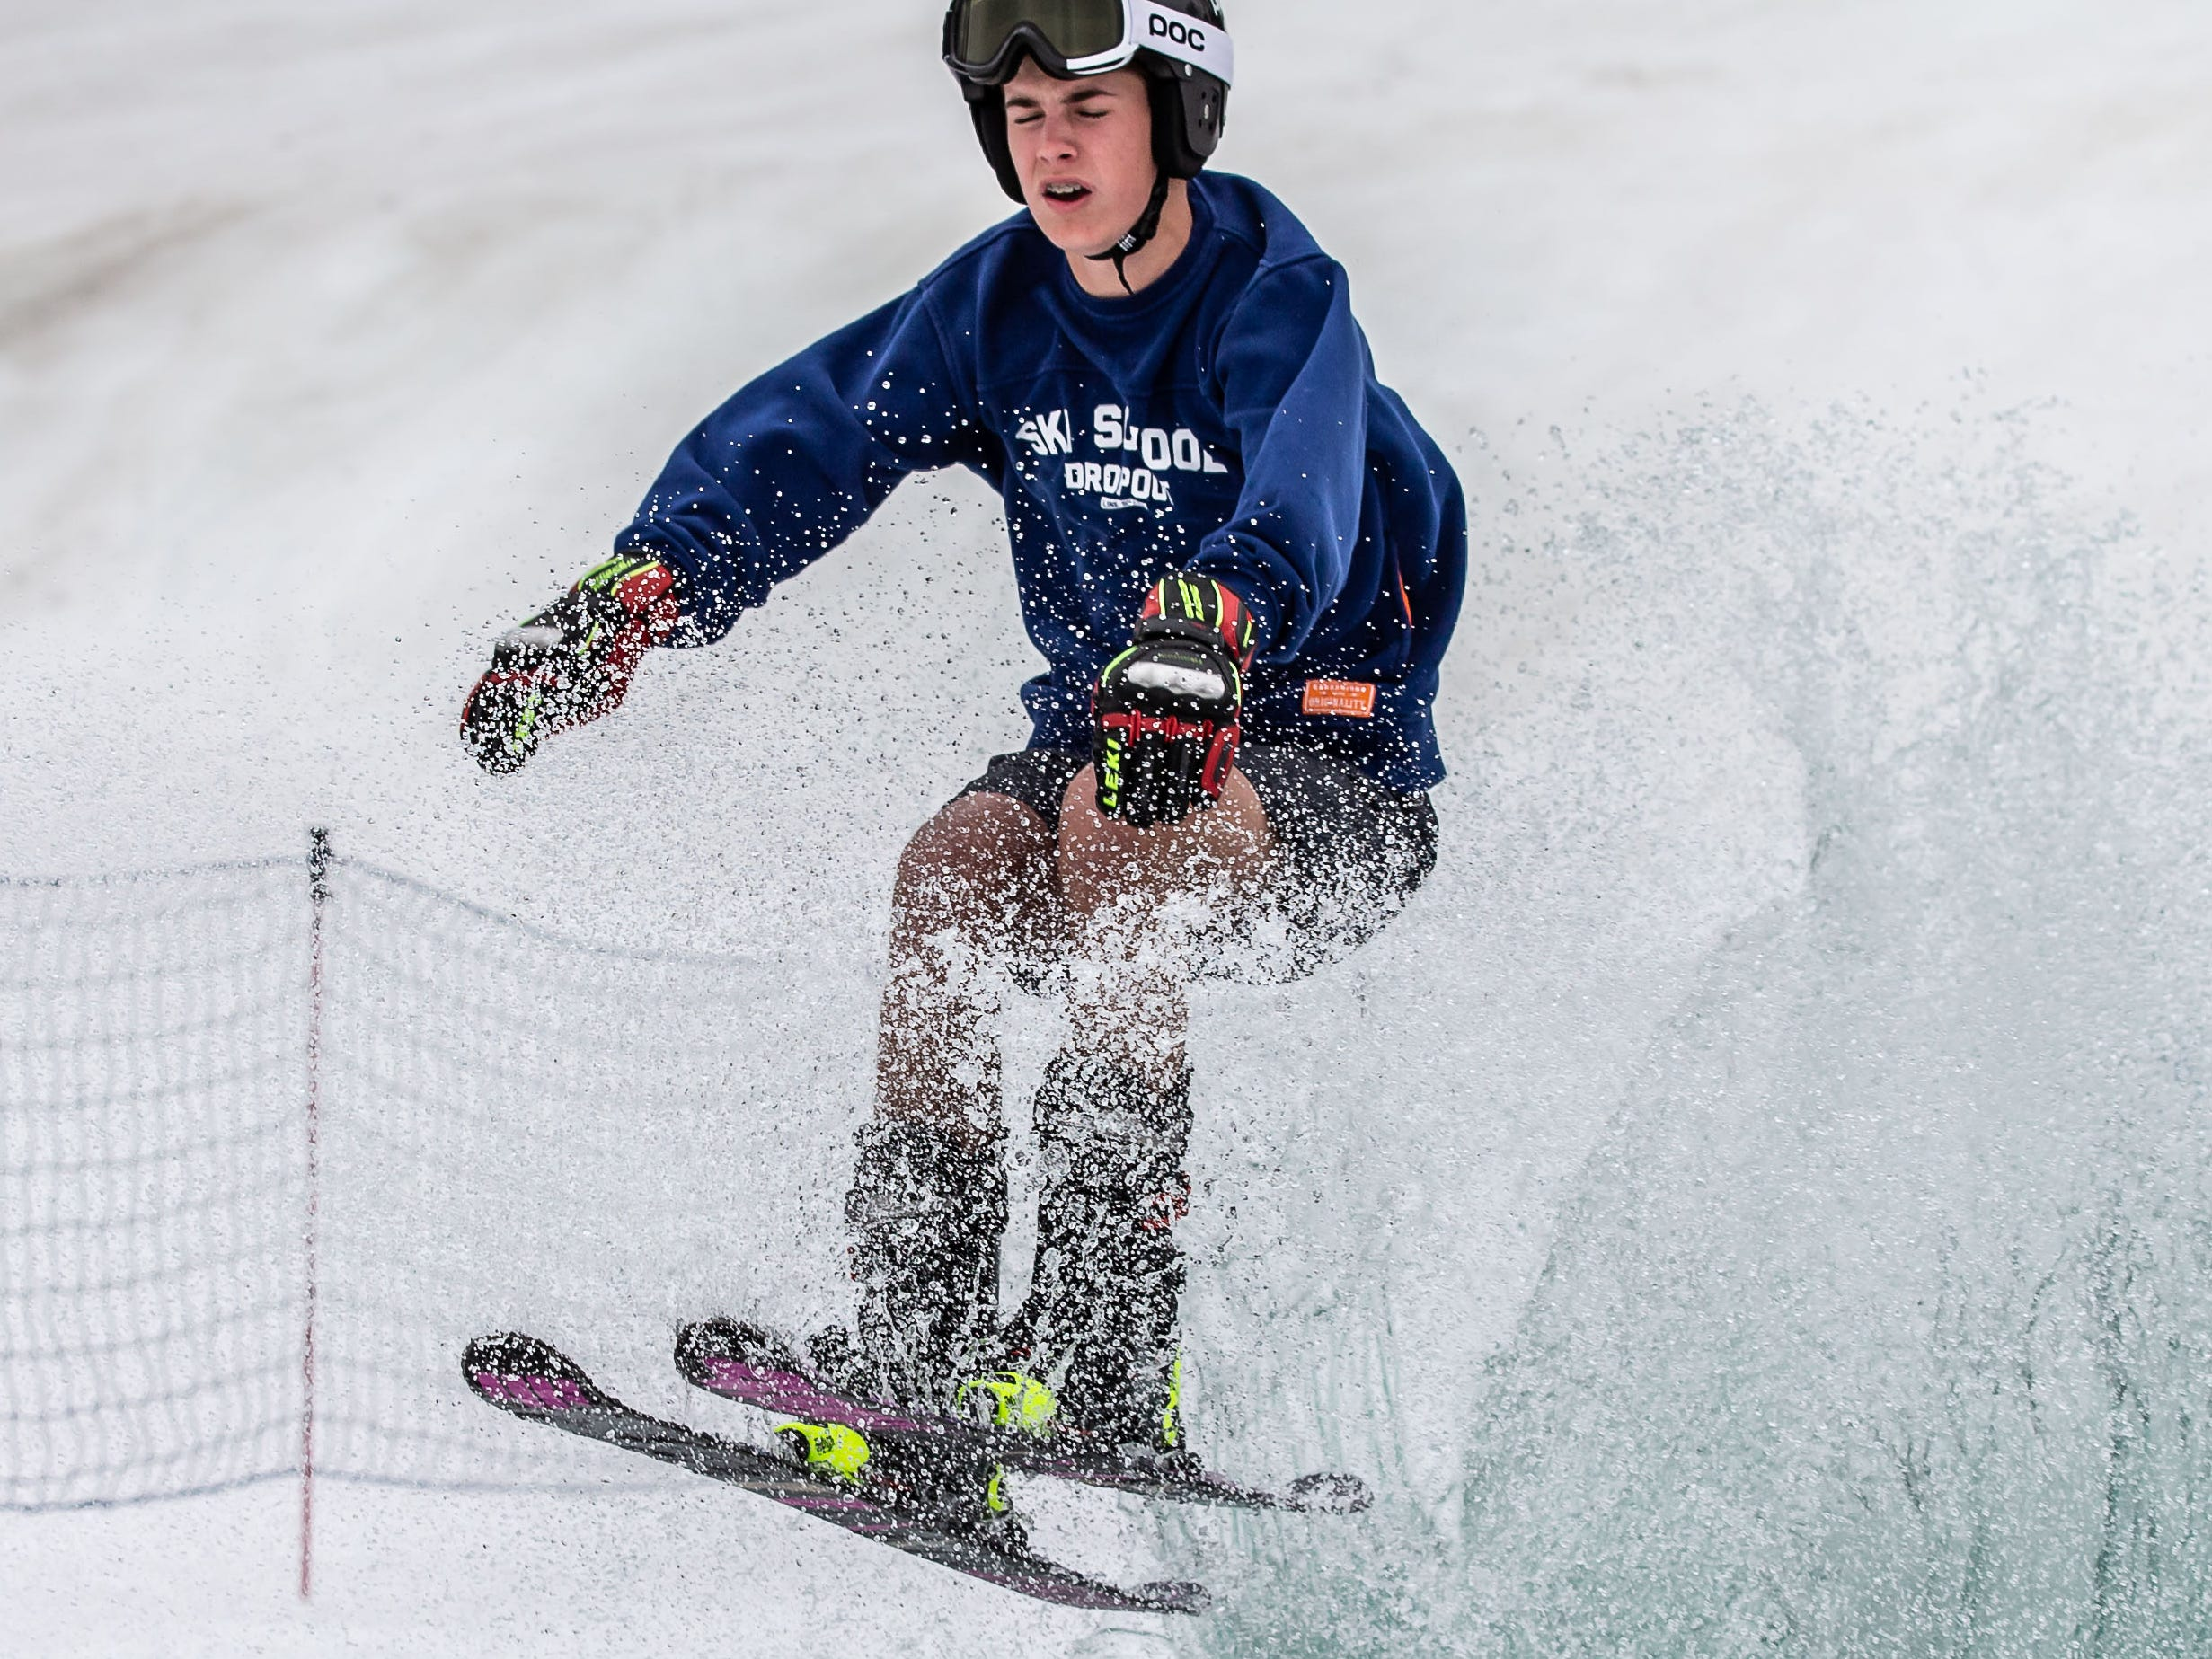 Braden Race, 15, of Okauchee launches out of the pond during the 2nd annual Pond Skim at Ausblick Ski Hill in Sussex on Saturday, April 6, 2019. The pond skim is held on the last day of the season as club members celebrate another fun-filled year on the slopes.